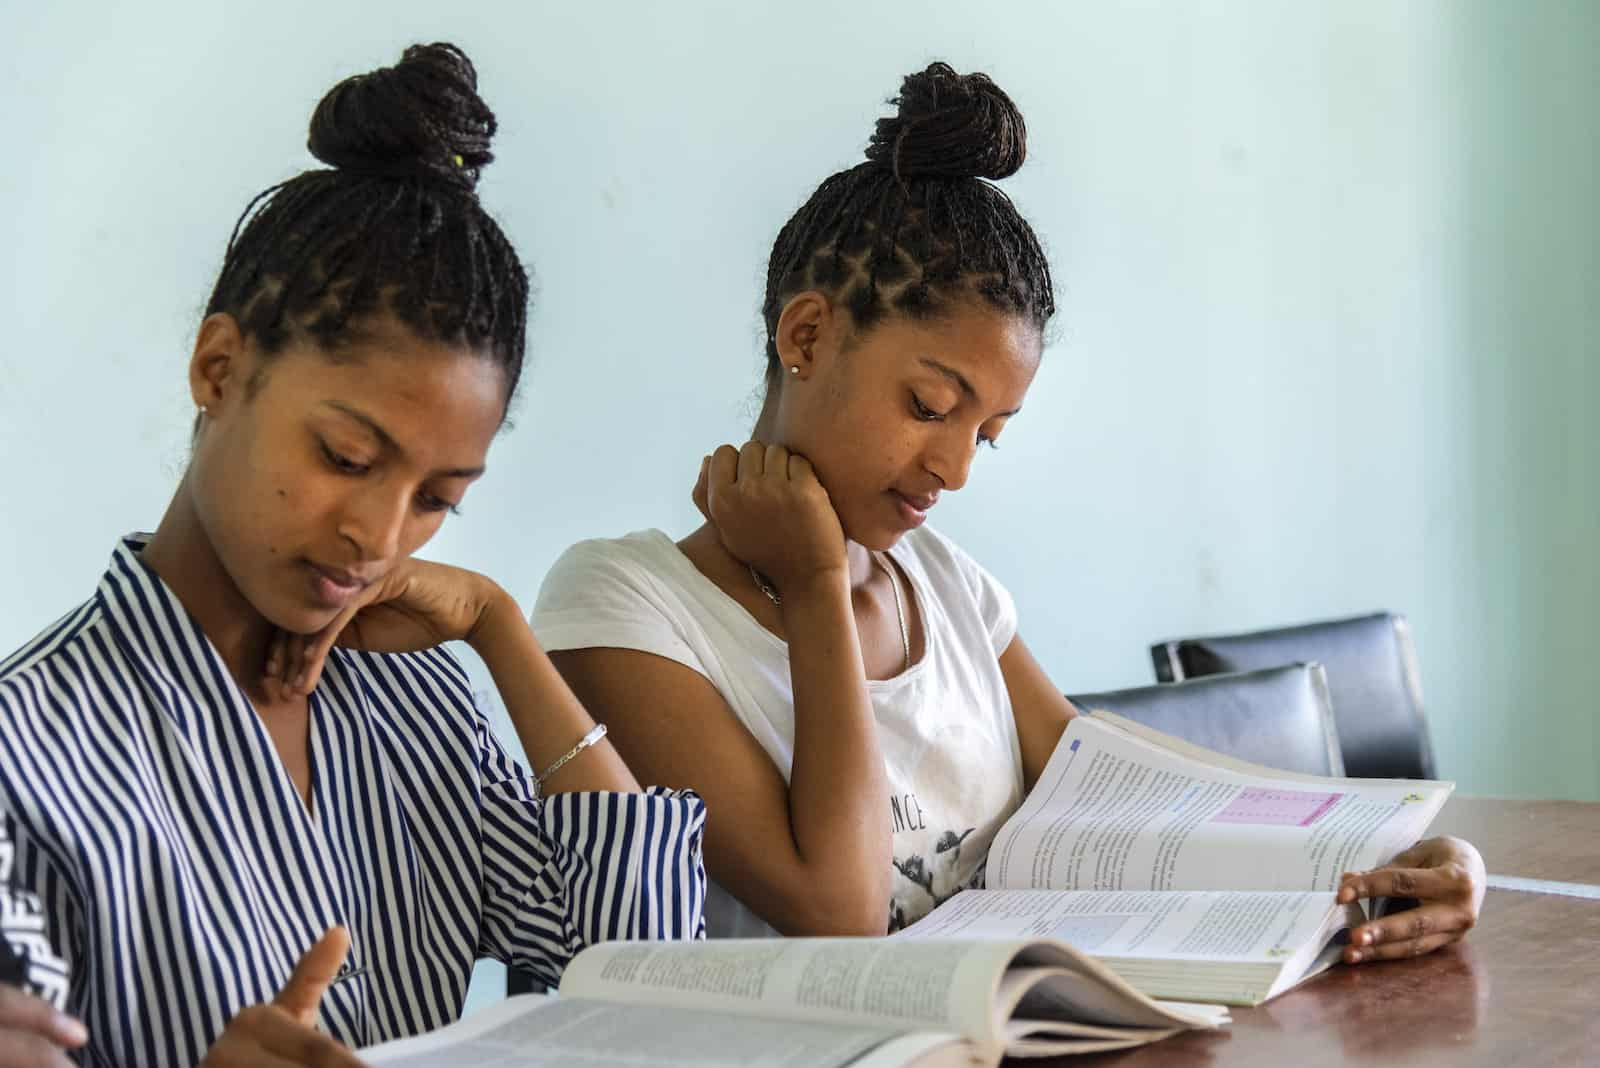 Two teenage girls sit at a desk, reading.